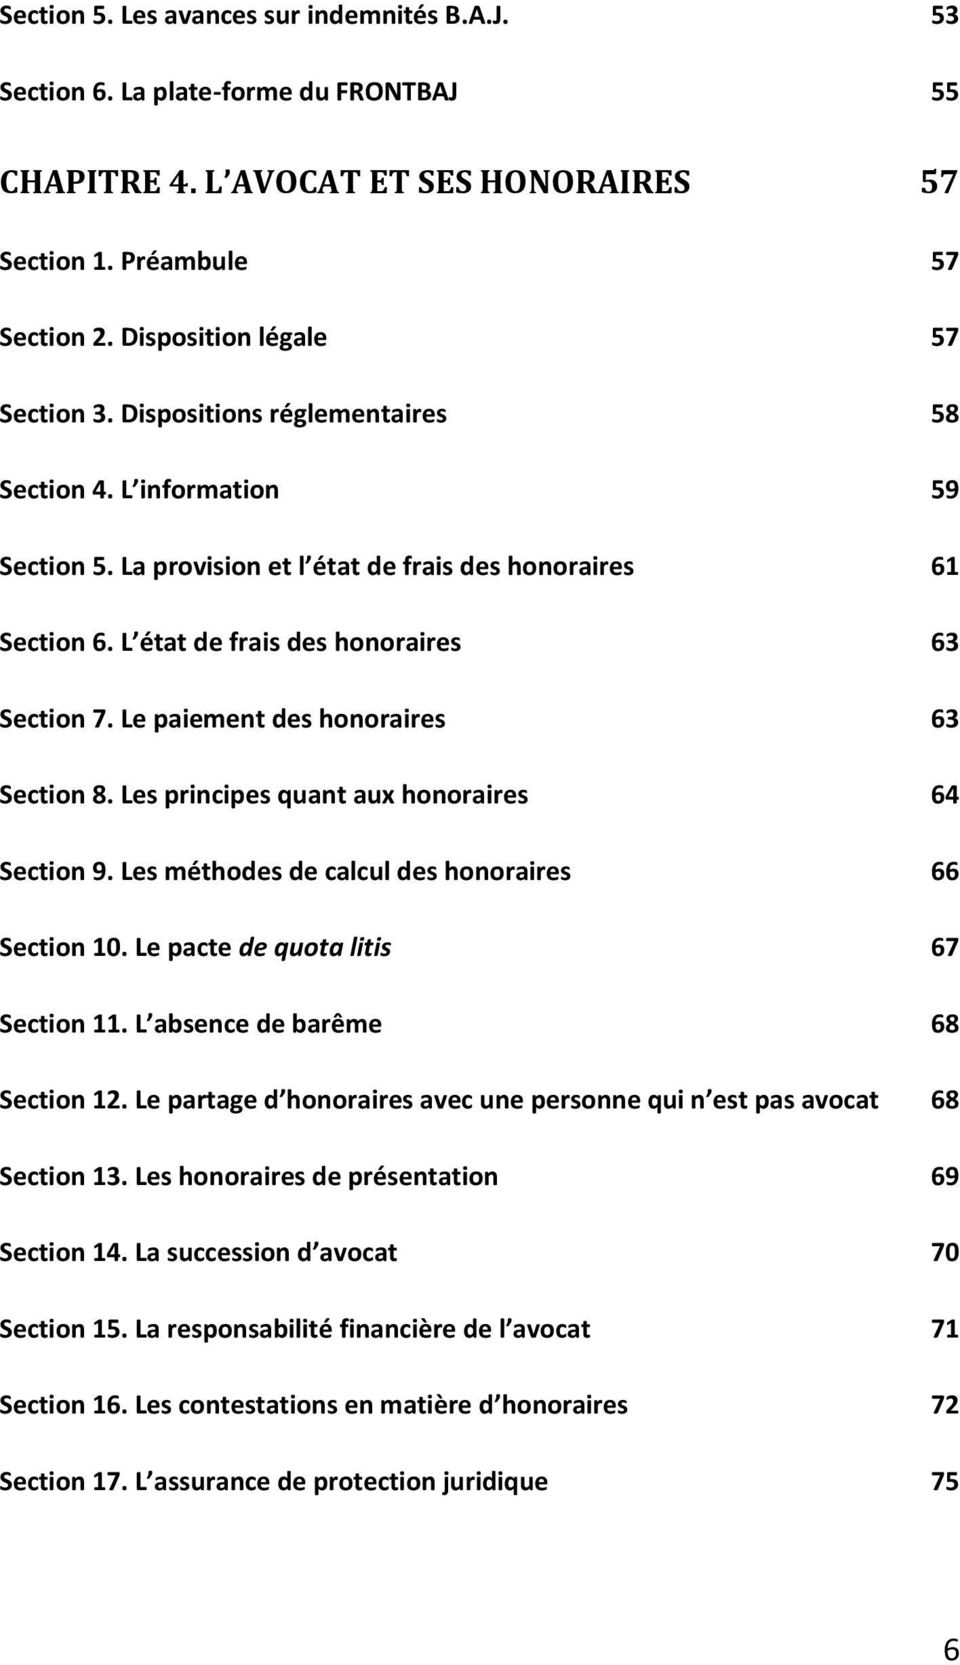 Le paiement des honoraires 63 Section 8. Les principes quant aux honoraires 64 Section 9. Les méthodes de calcul des honoraires 66 Section 10. Le pacte de quota litis 67 Section 11.